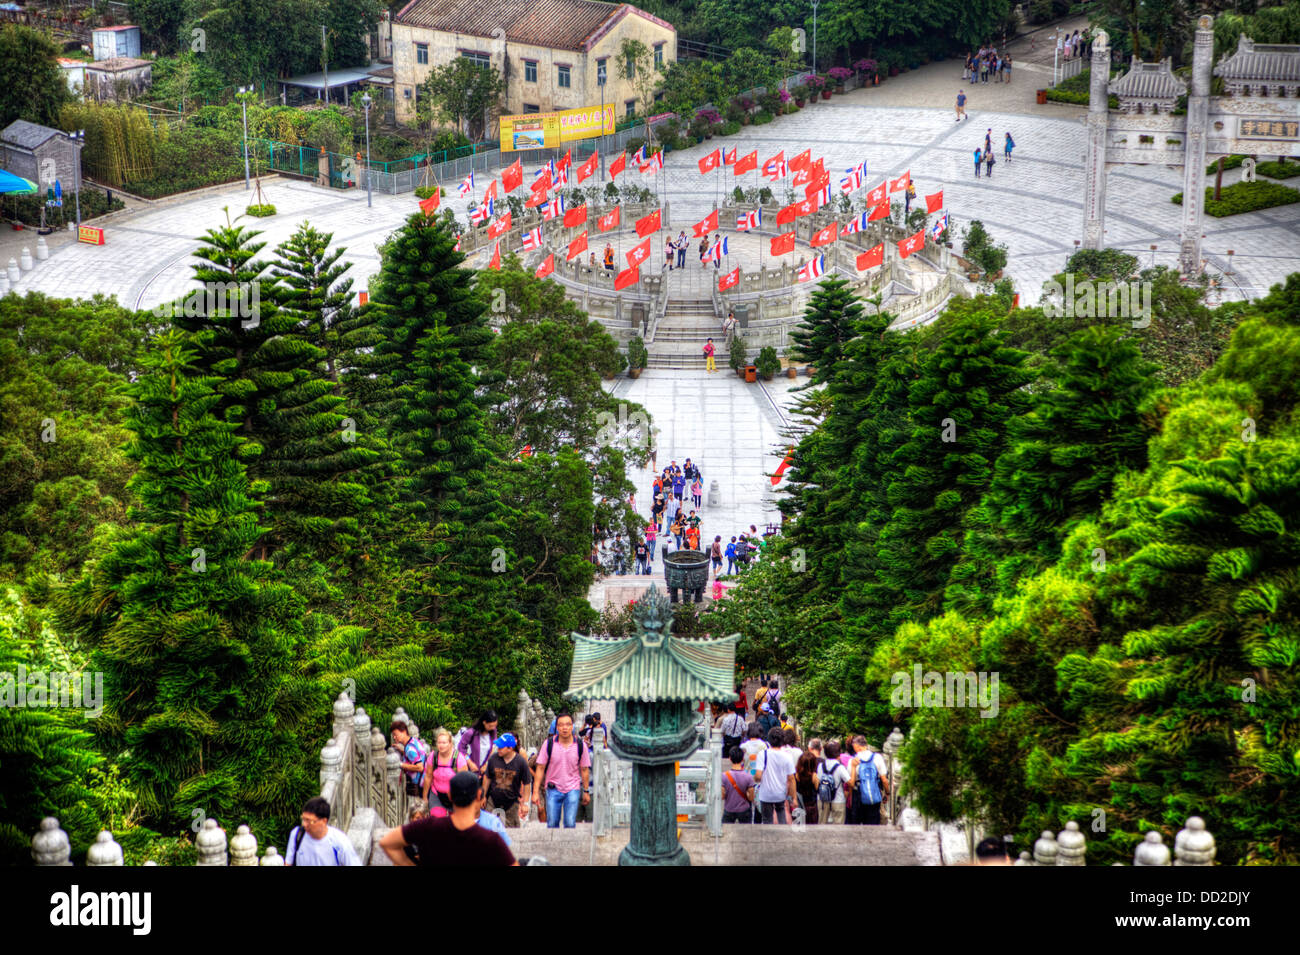 Hong Kong, Lantau island the very steep steps that lead to the Po Lin Monastery at the bottom - Stock Image